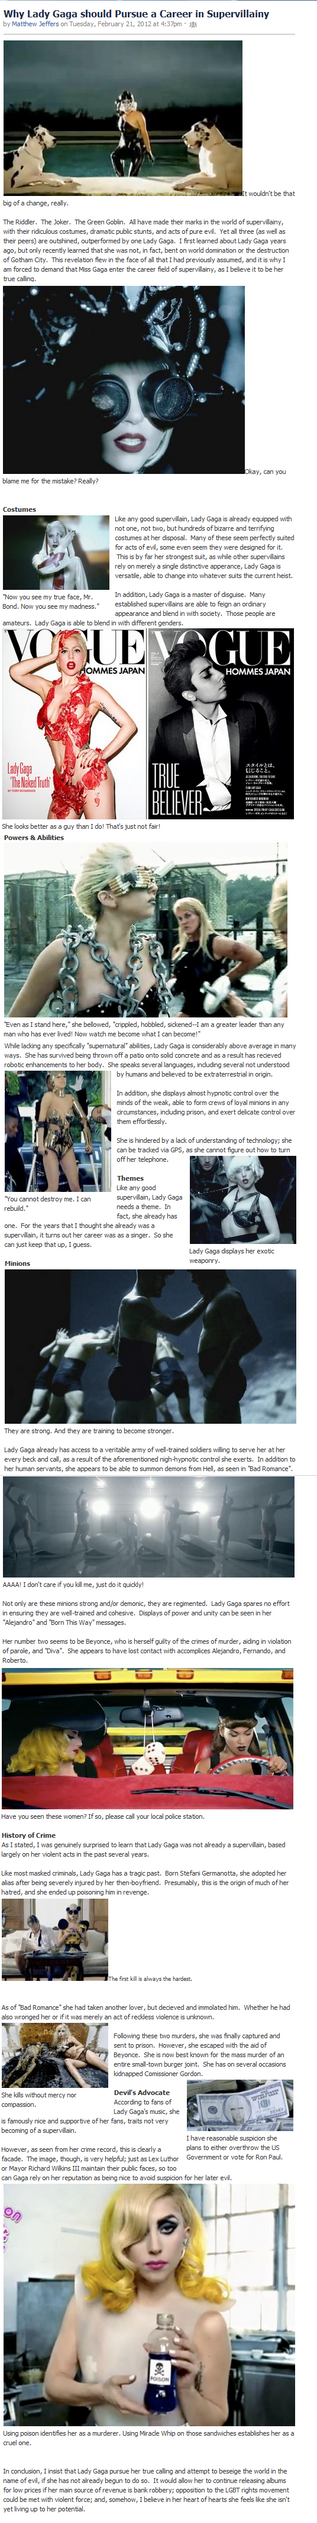 Why Lady Gaga should become a Supervillain by Patameth